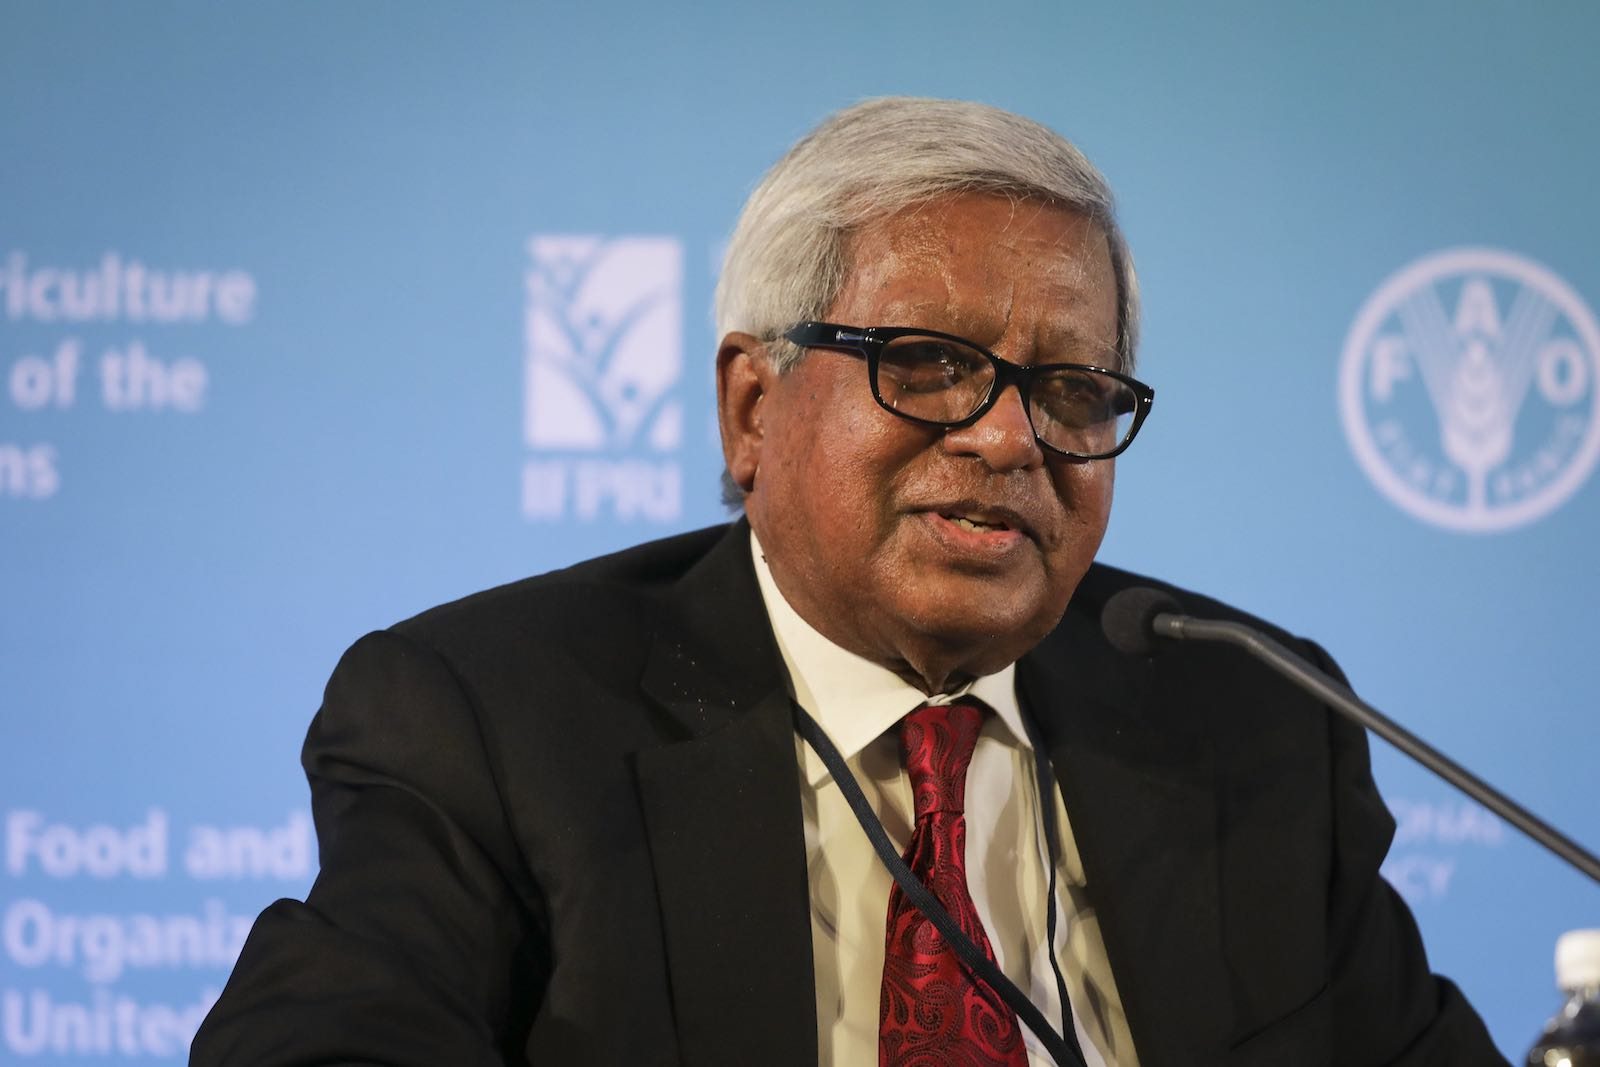 Sir Fazle Hasan Abed, founder of BRAC, in 2018 (Photo: Amanda Mustard for FAO/IFPRI-Images/Flickr)